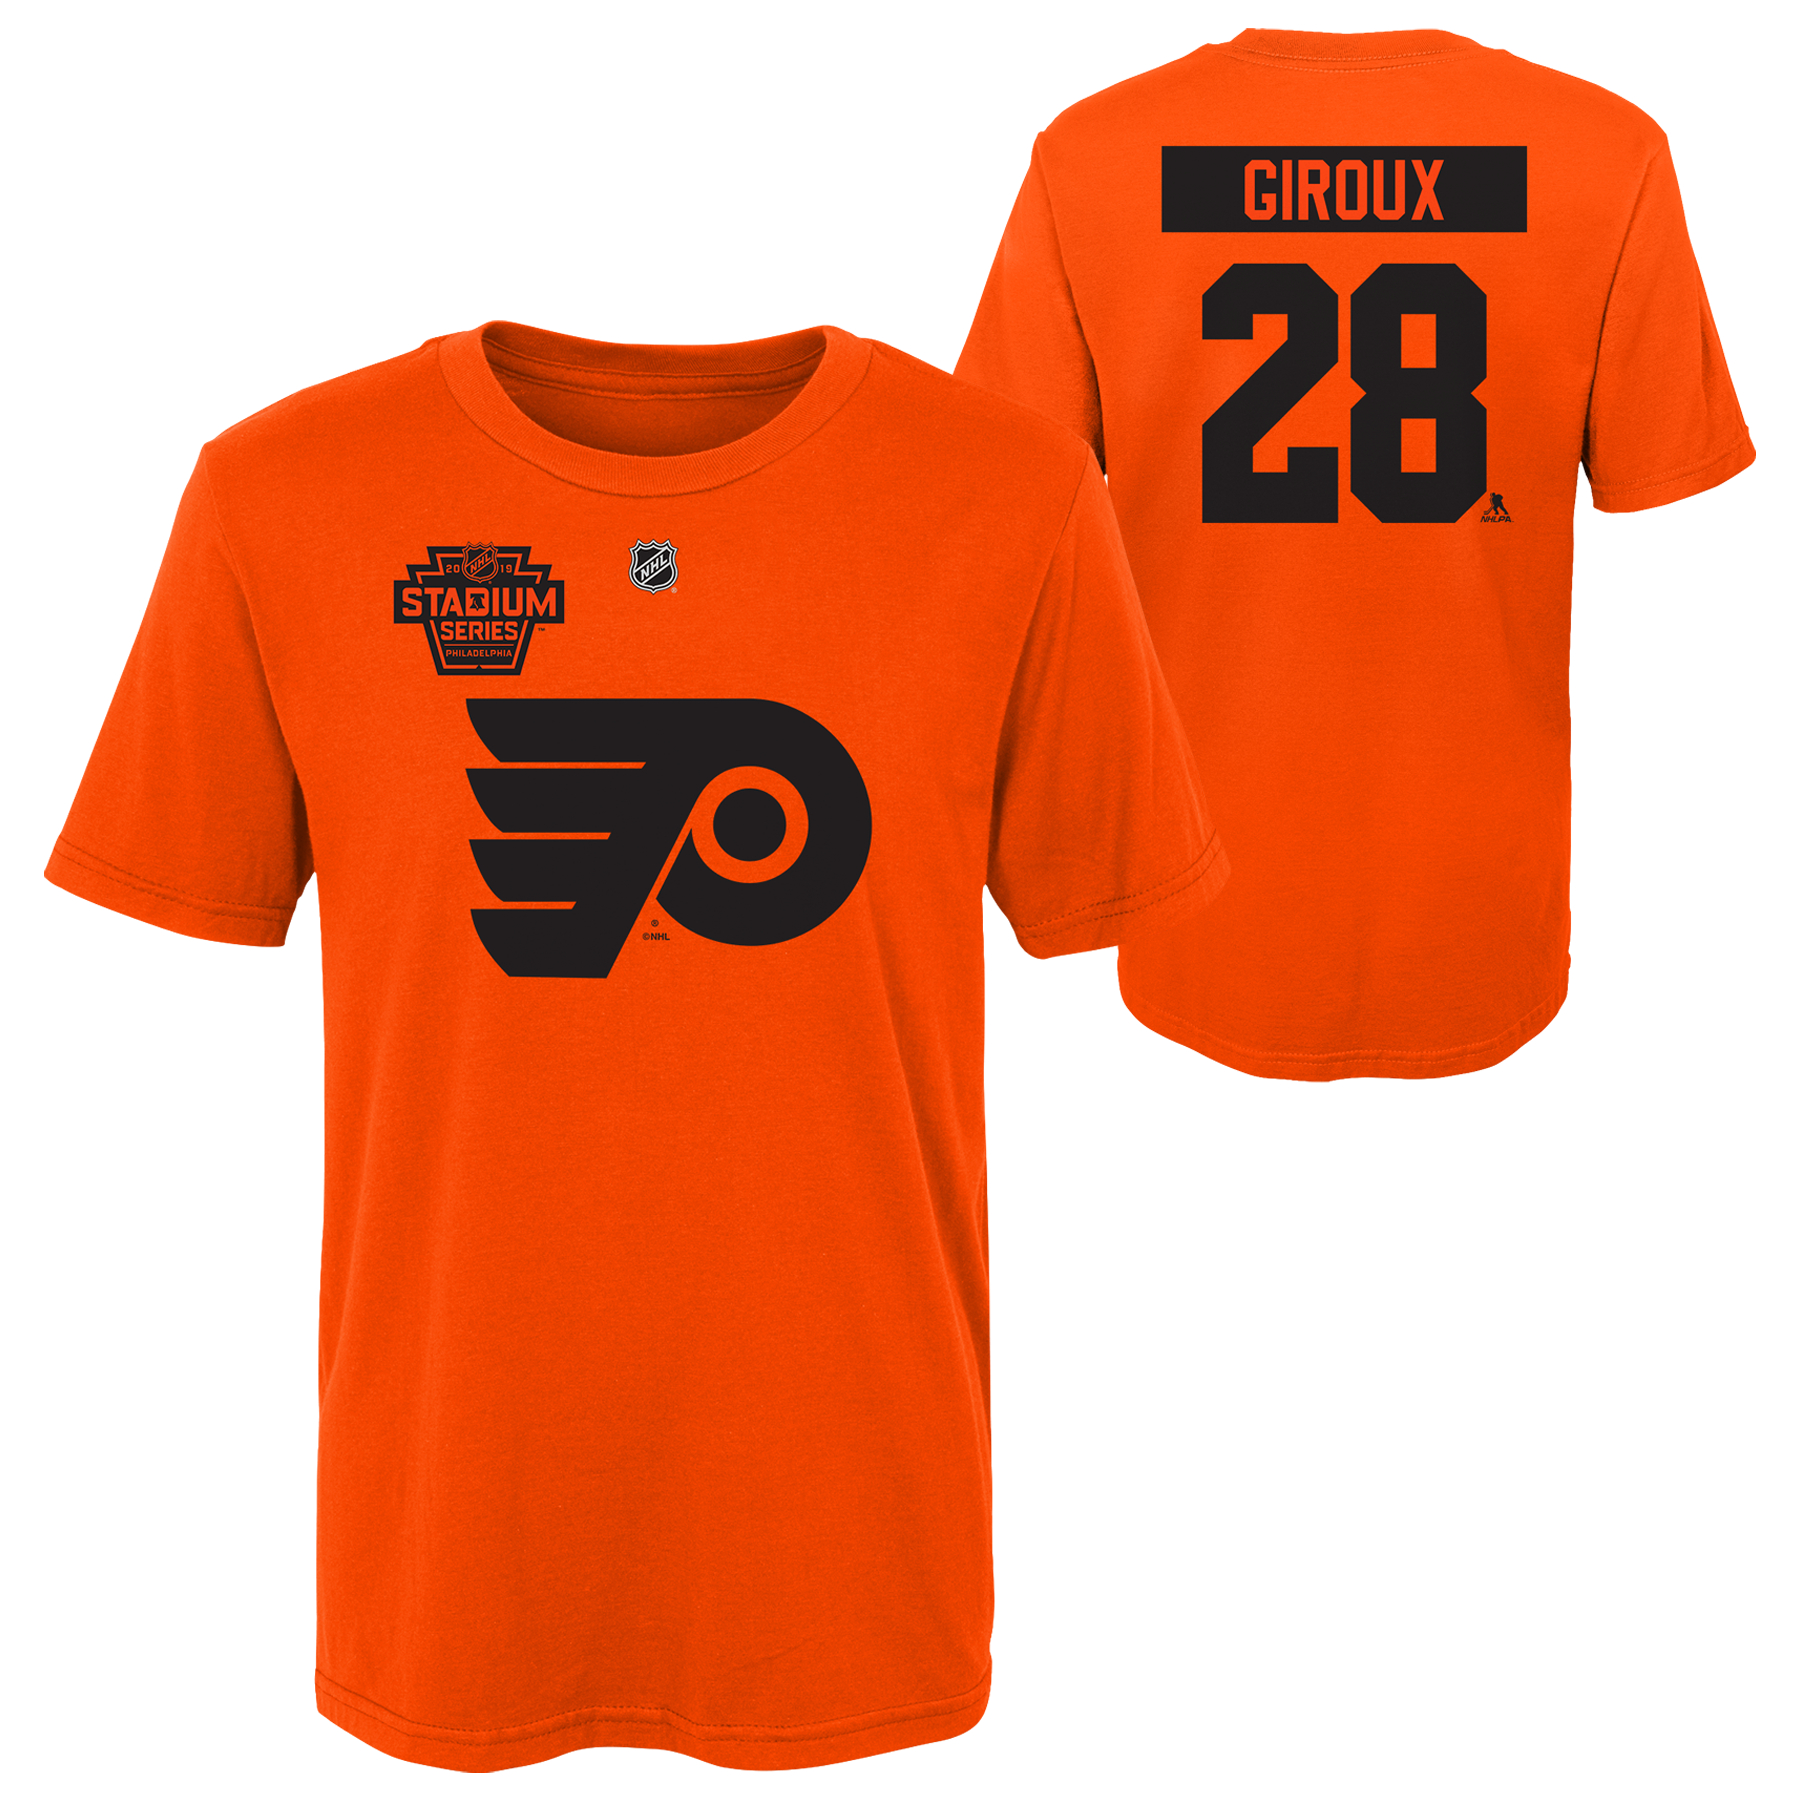 beb865be7e7 Philadelphia Flyers Men's Giroux Player Tee by Adidas - Wells Fargo Center  - Official Online Store